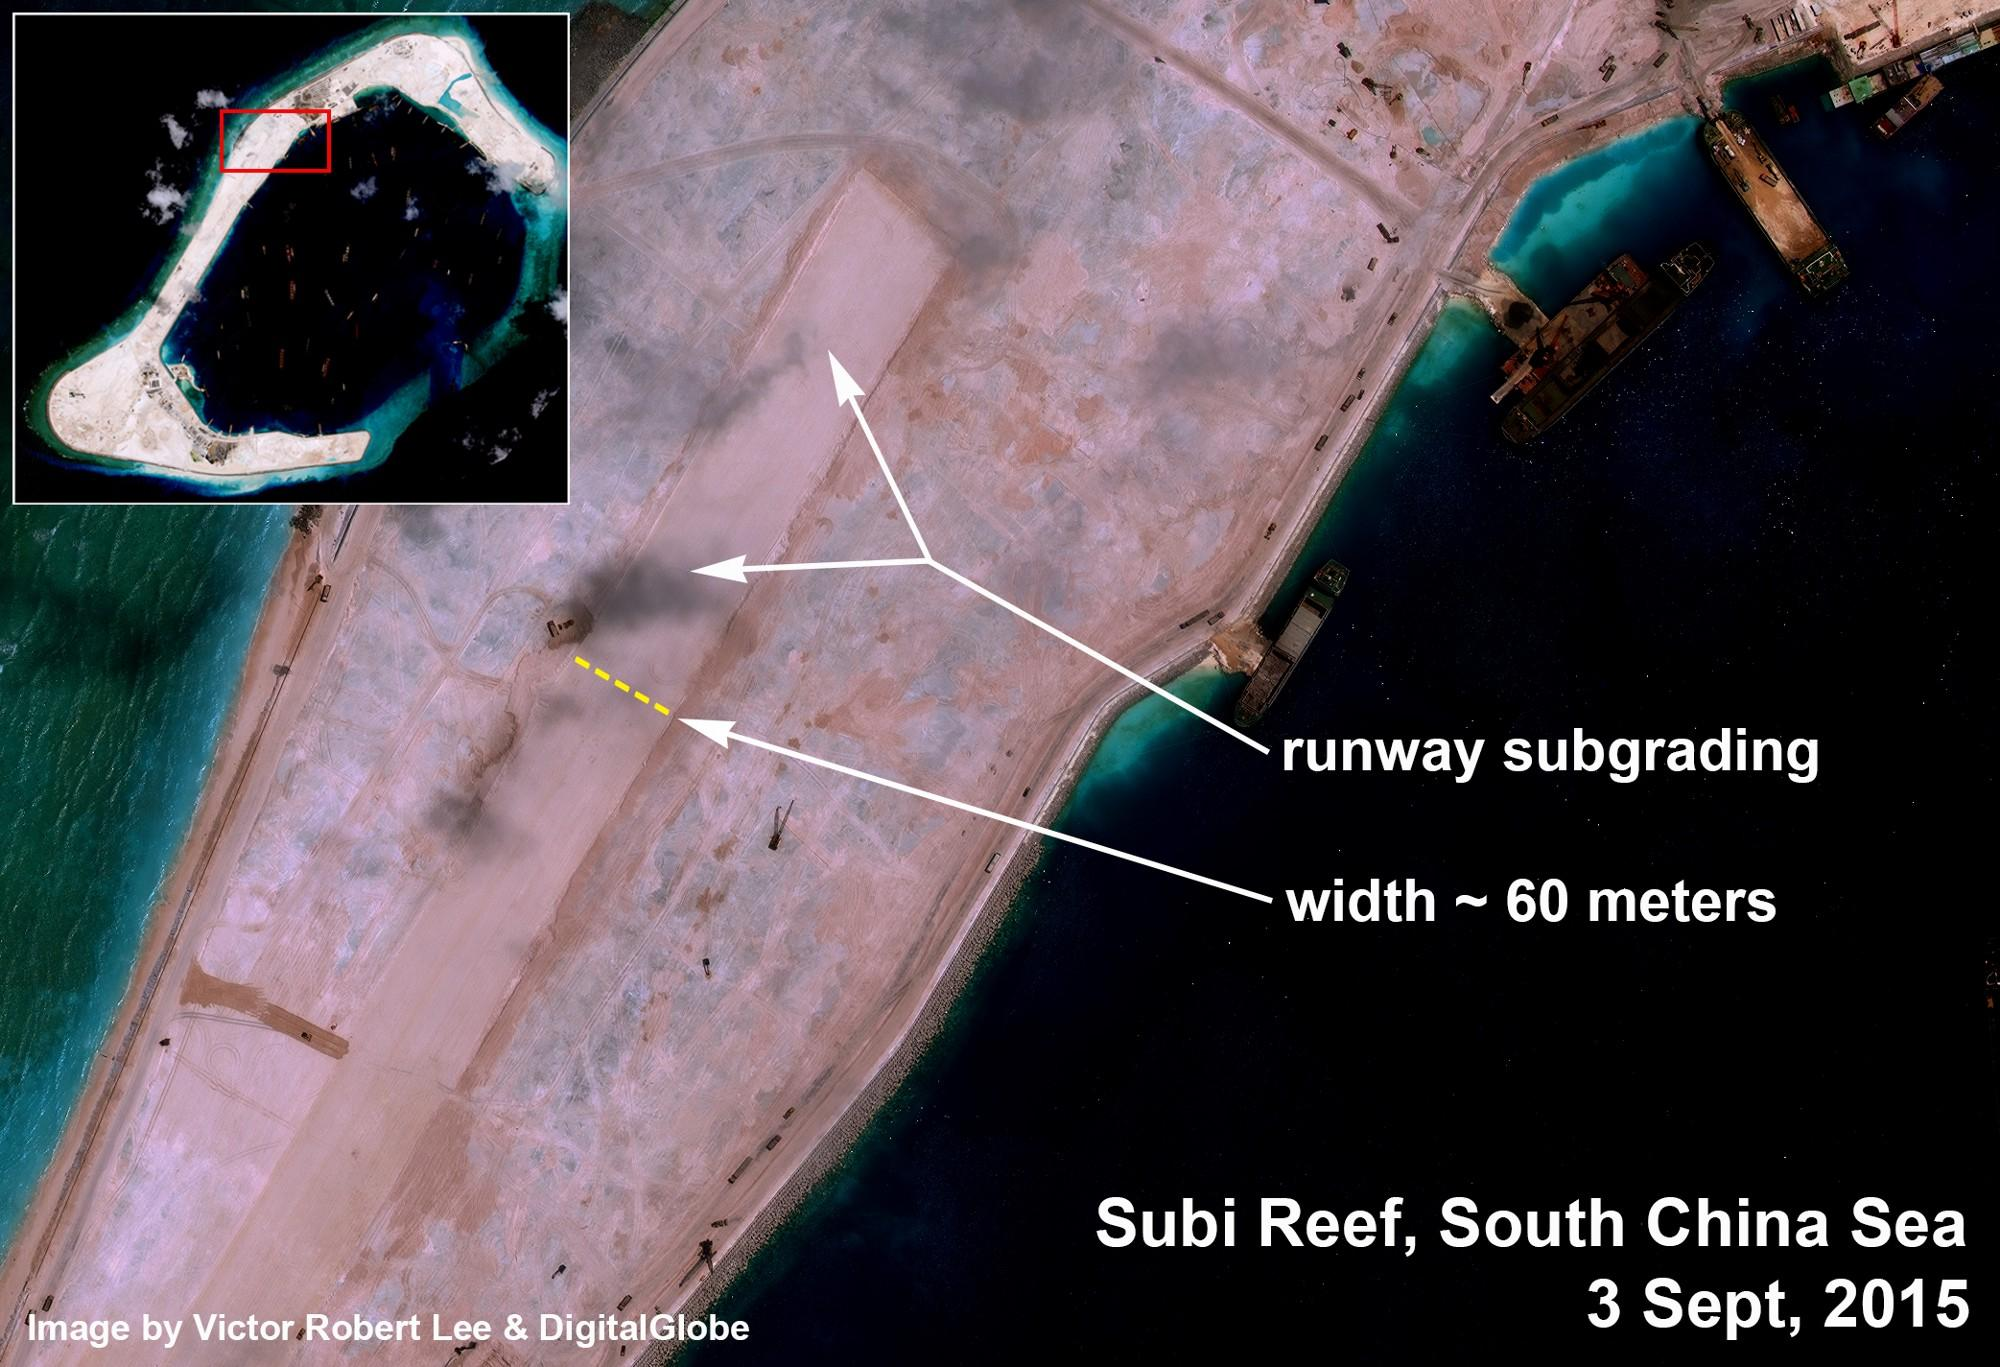 South China Sea runway